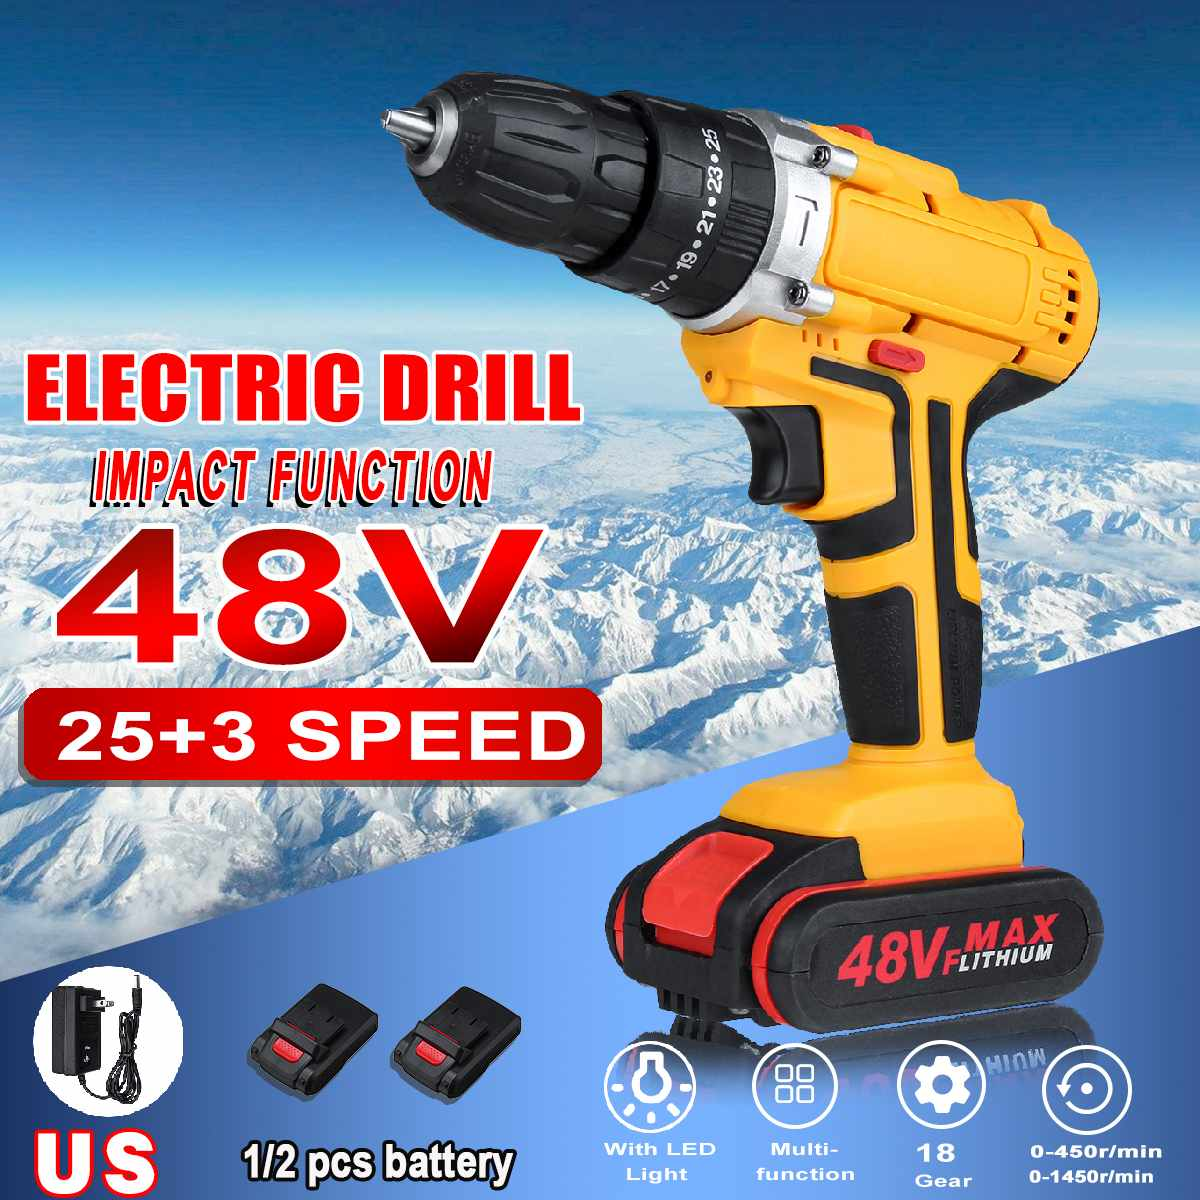 48V 25+3 Torque 2-Speed <font><b>Electric</b></font> <font><b>Screwdriver</b></font> <font><b>Cordless</b></font> <font><b>Drill</b></font> <font><b>Impact</b></font> <font><b>Drill</b></font> Mini Wireless Power Driver 1/2 DC Lithium-Ion Battery image